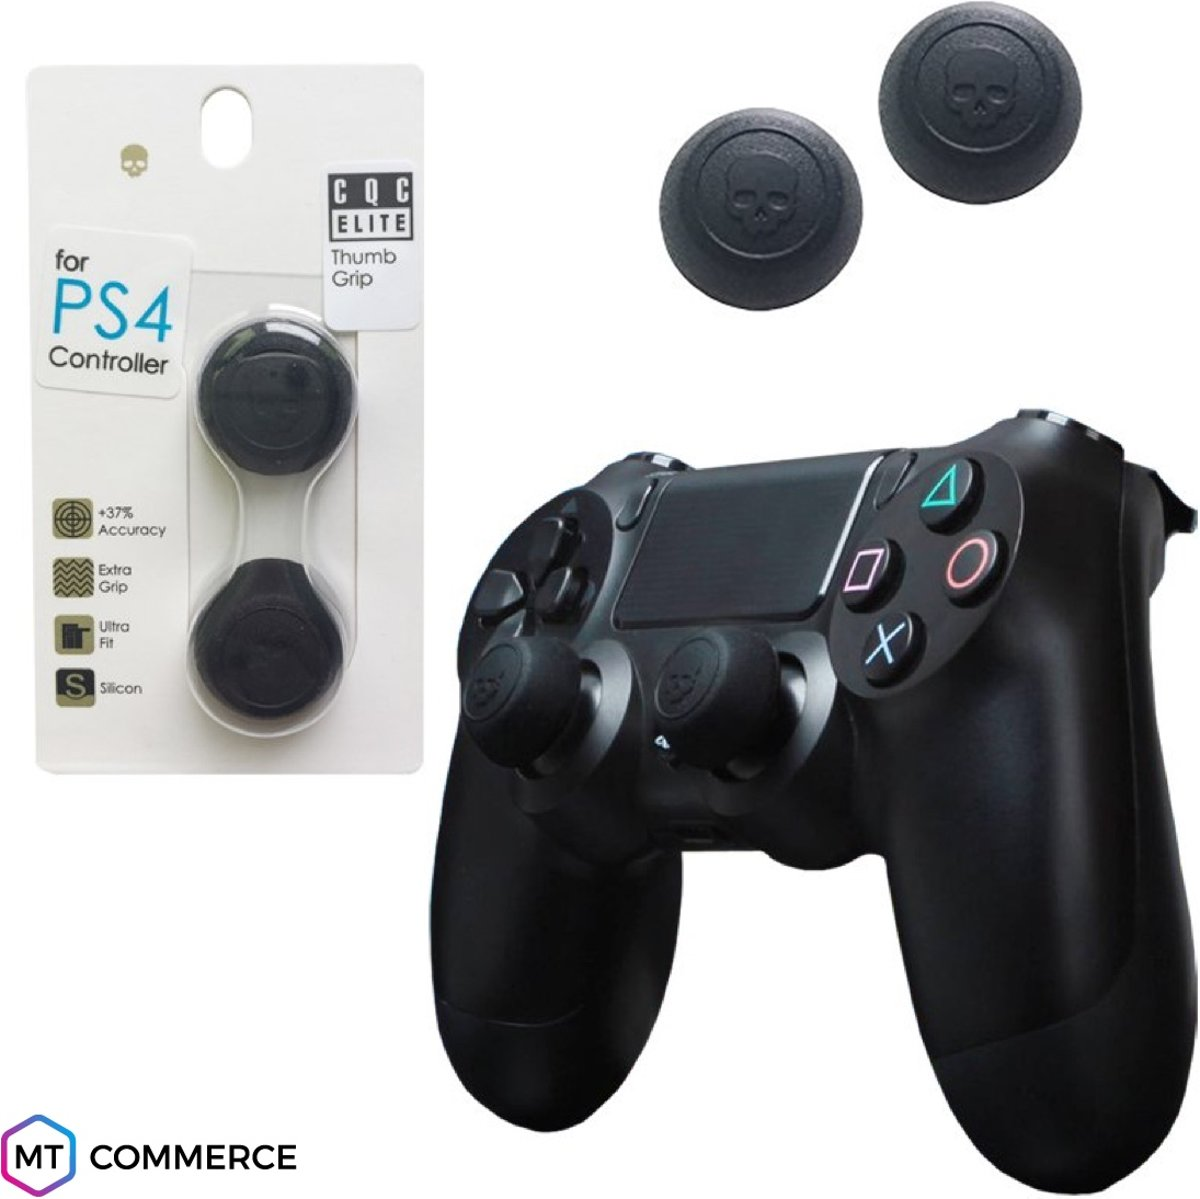 CQC Elite thumbsticks voor PS4 - PlayStation Controller Thumb Grips - Zwart